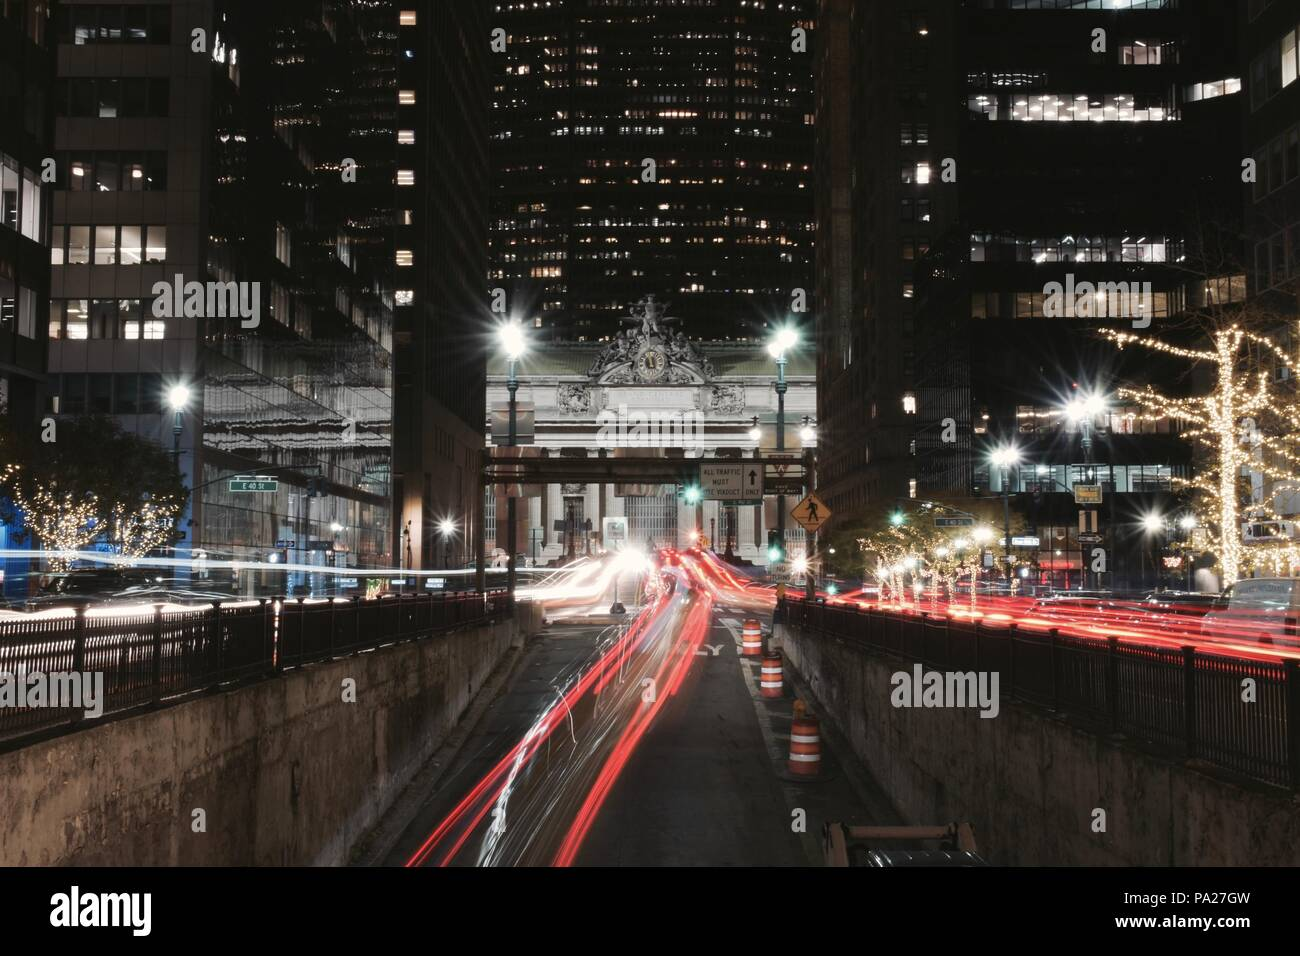 A Way to Grand Central - Stock Image